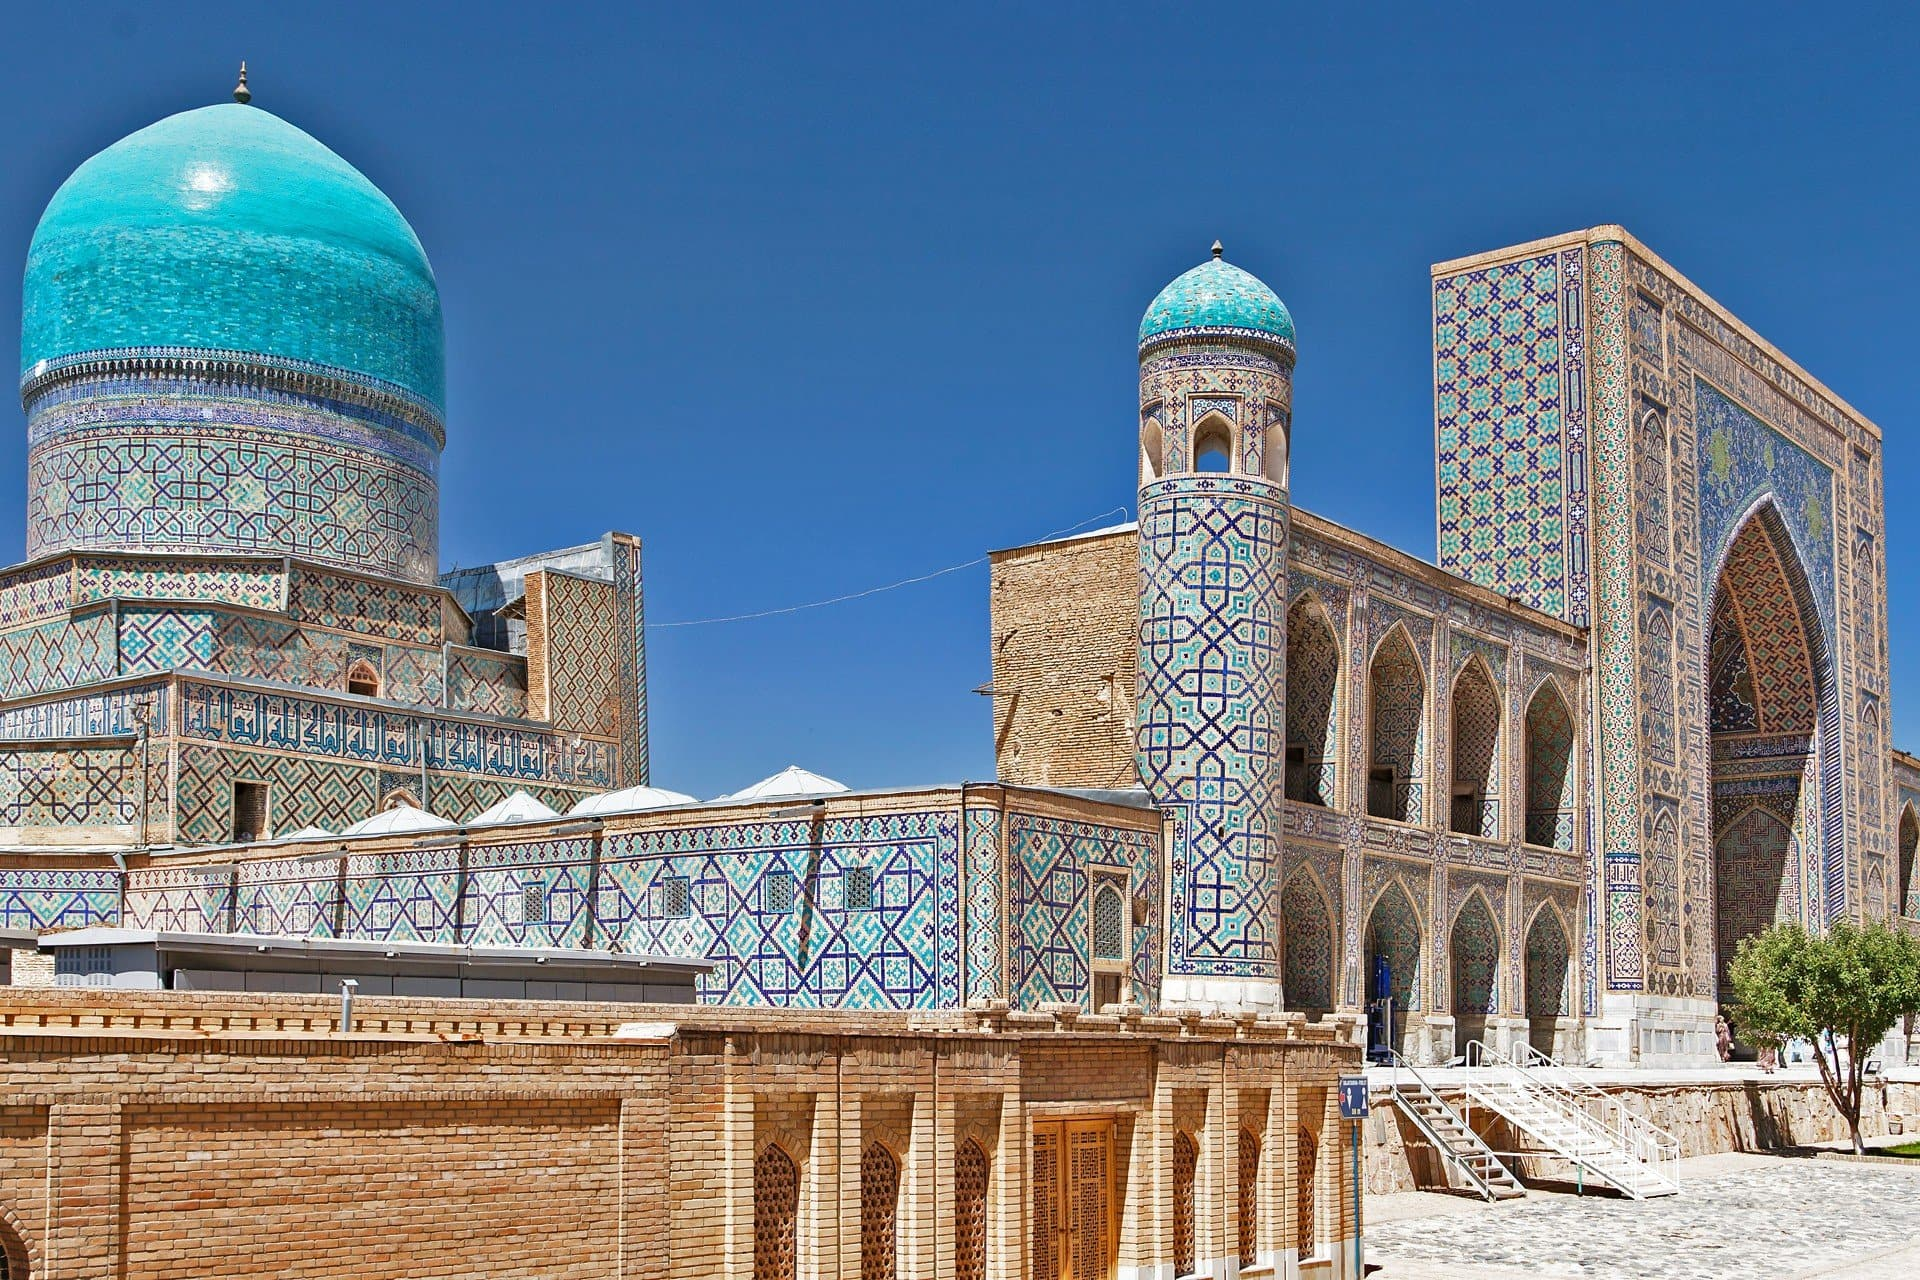 Bookatour - search, compare and book tours to Uzbekistan - 1